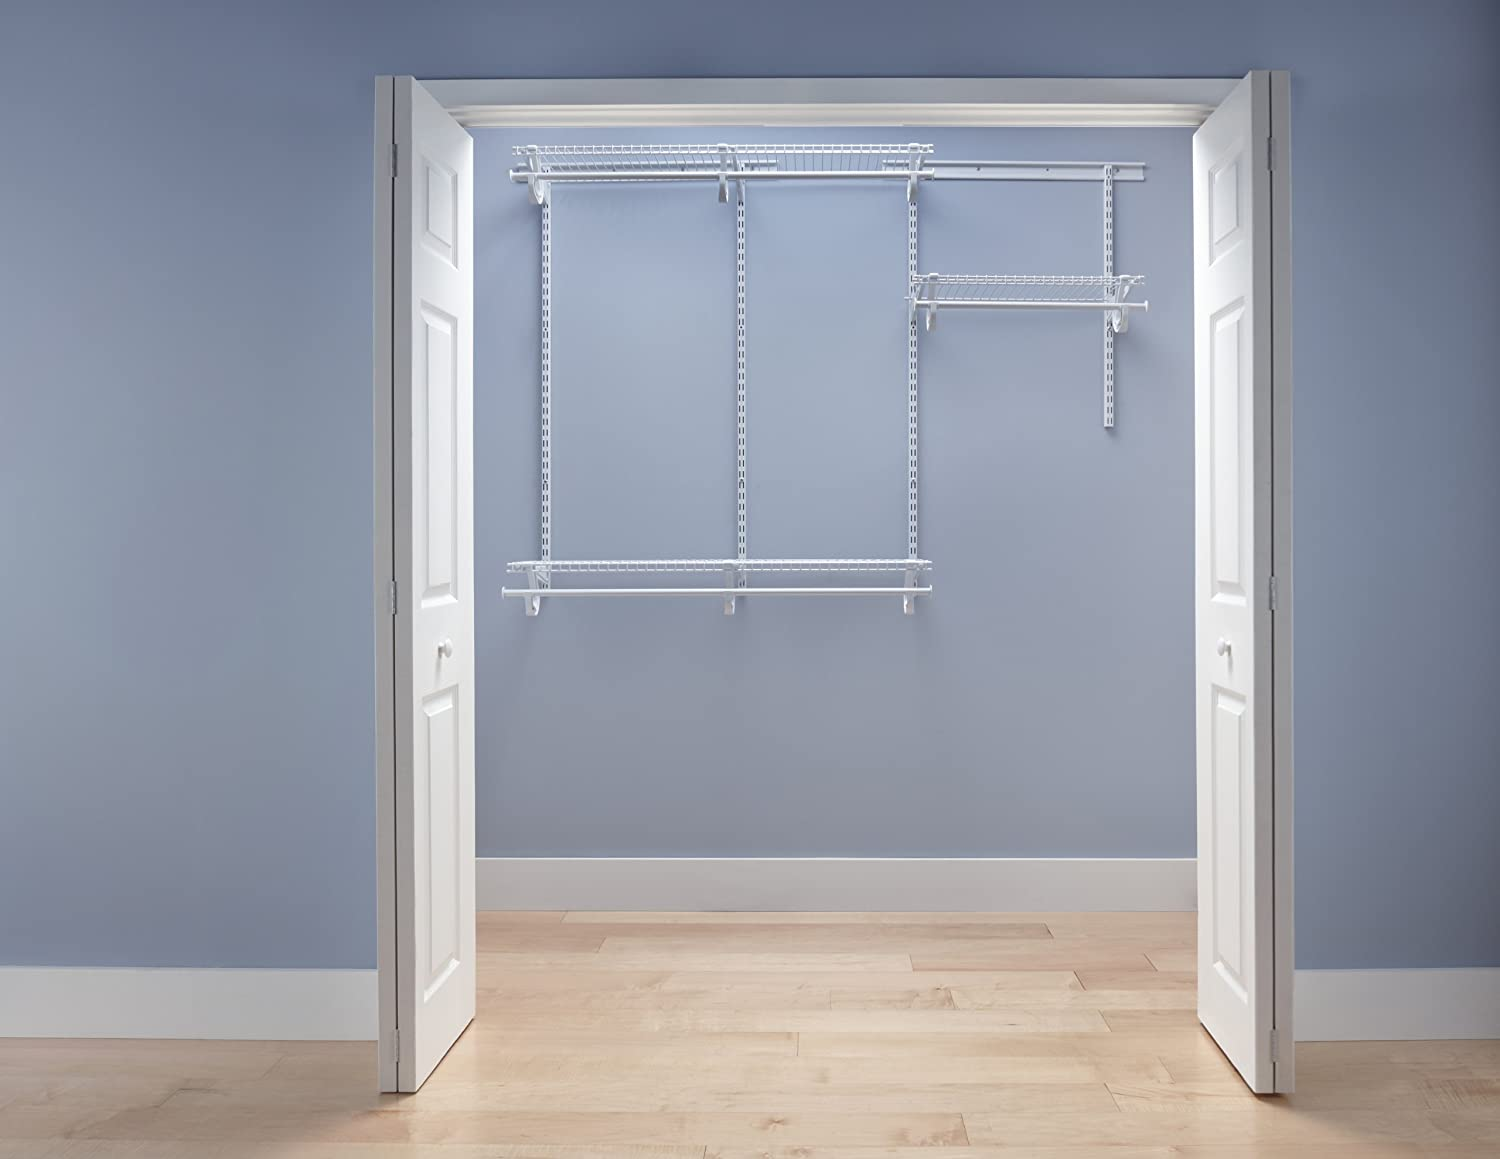 Amazon.com: ClosetMaid 22873 ShelfTrack 4ft. to 6ft. Adjustable ...